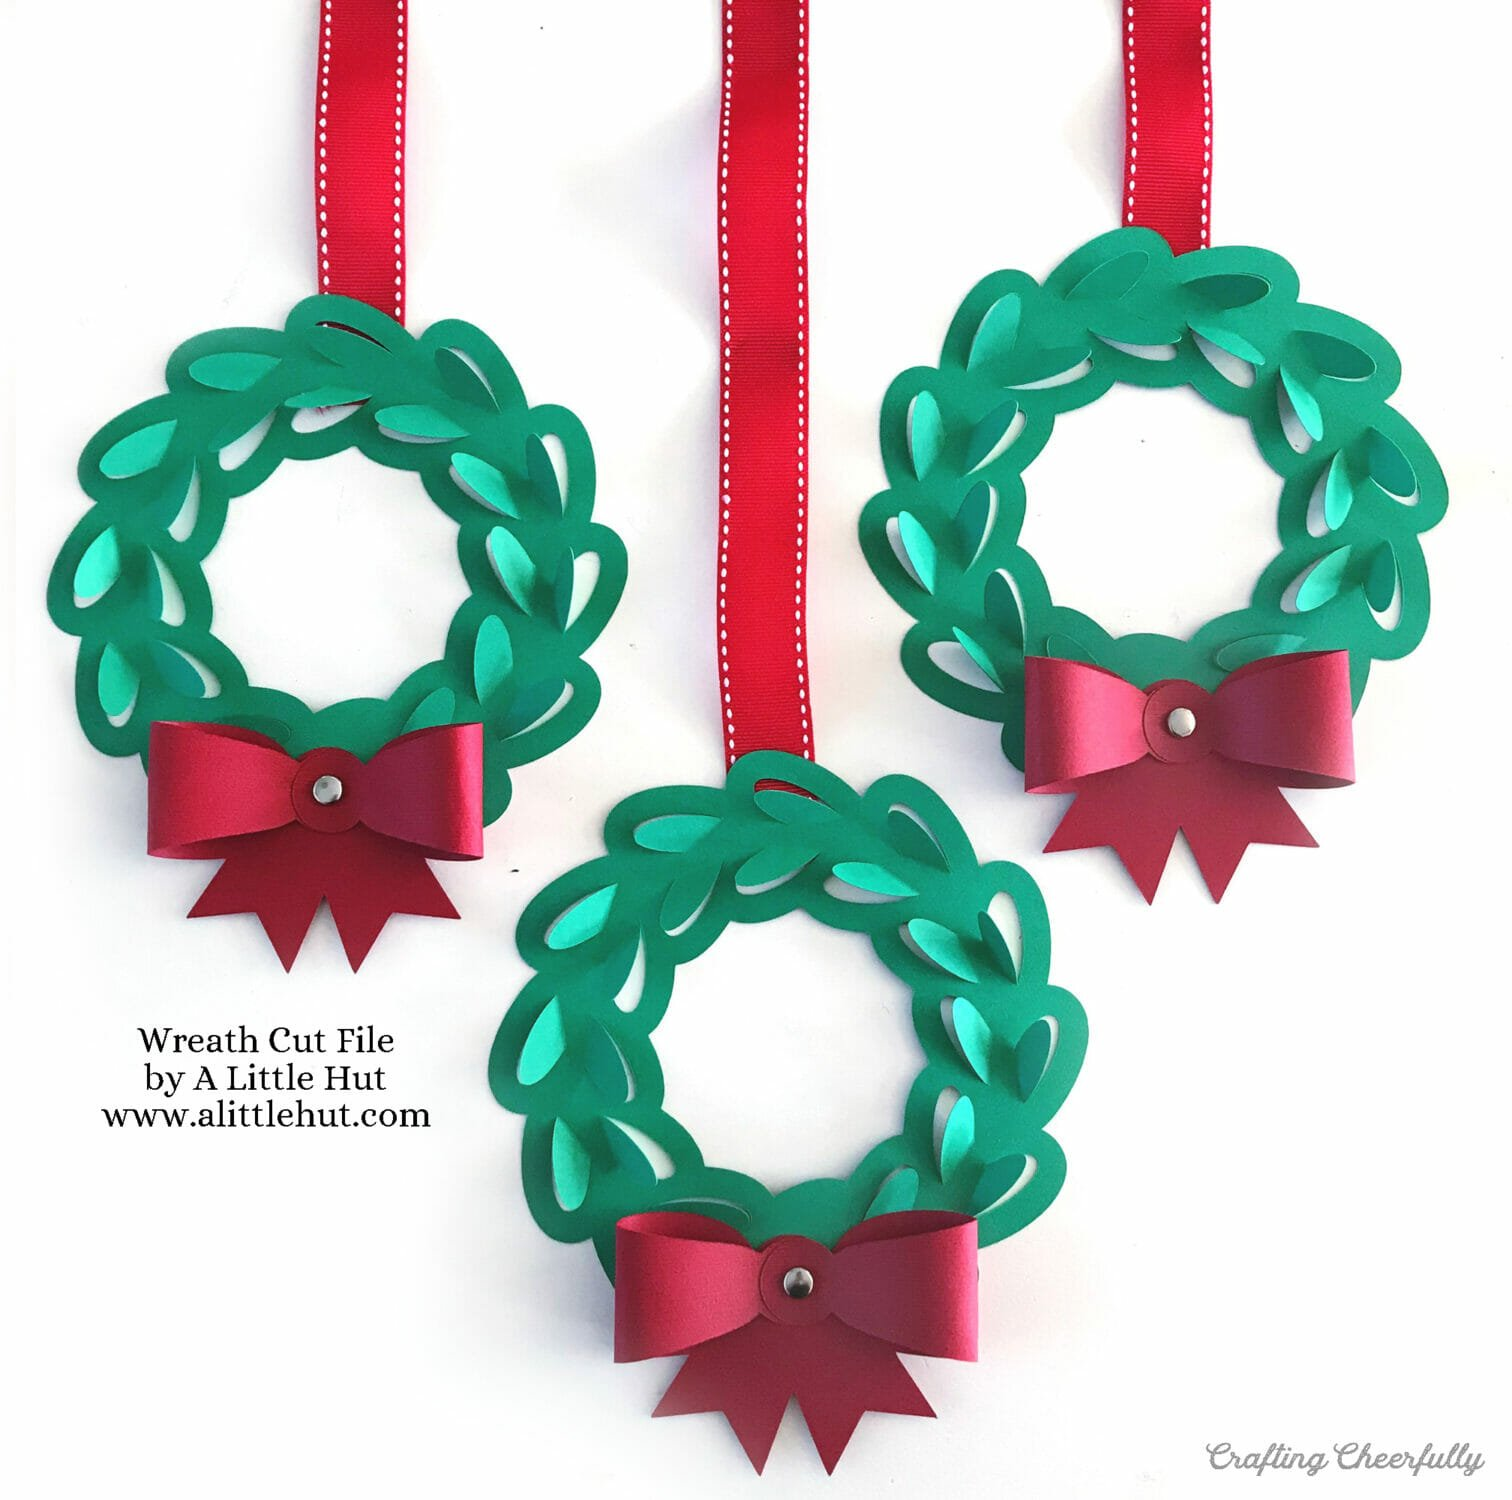 Three holiday wreaths made out of paper using a cut file by A Little Hut